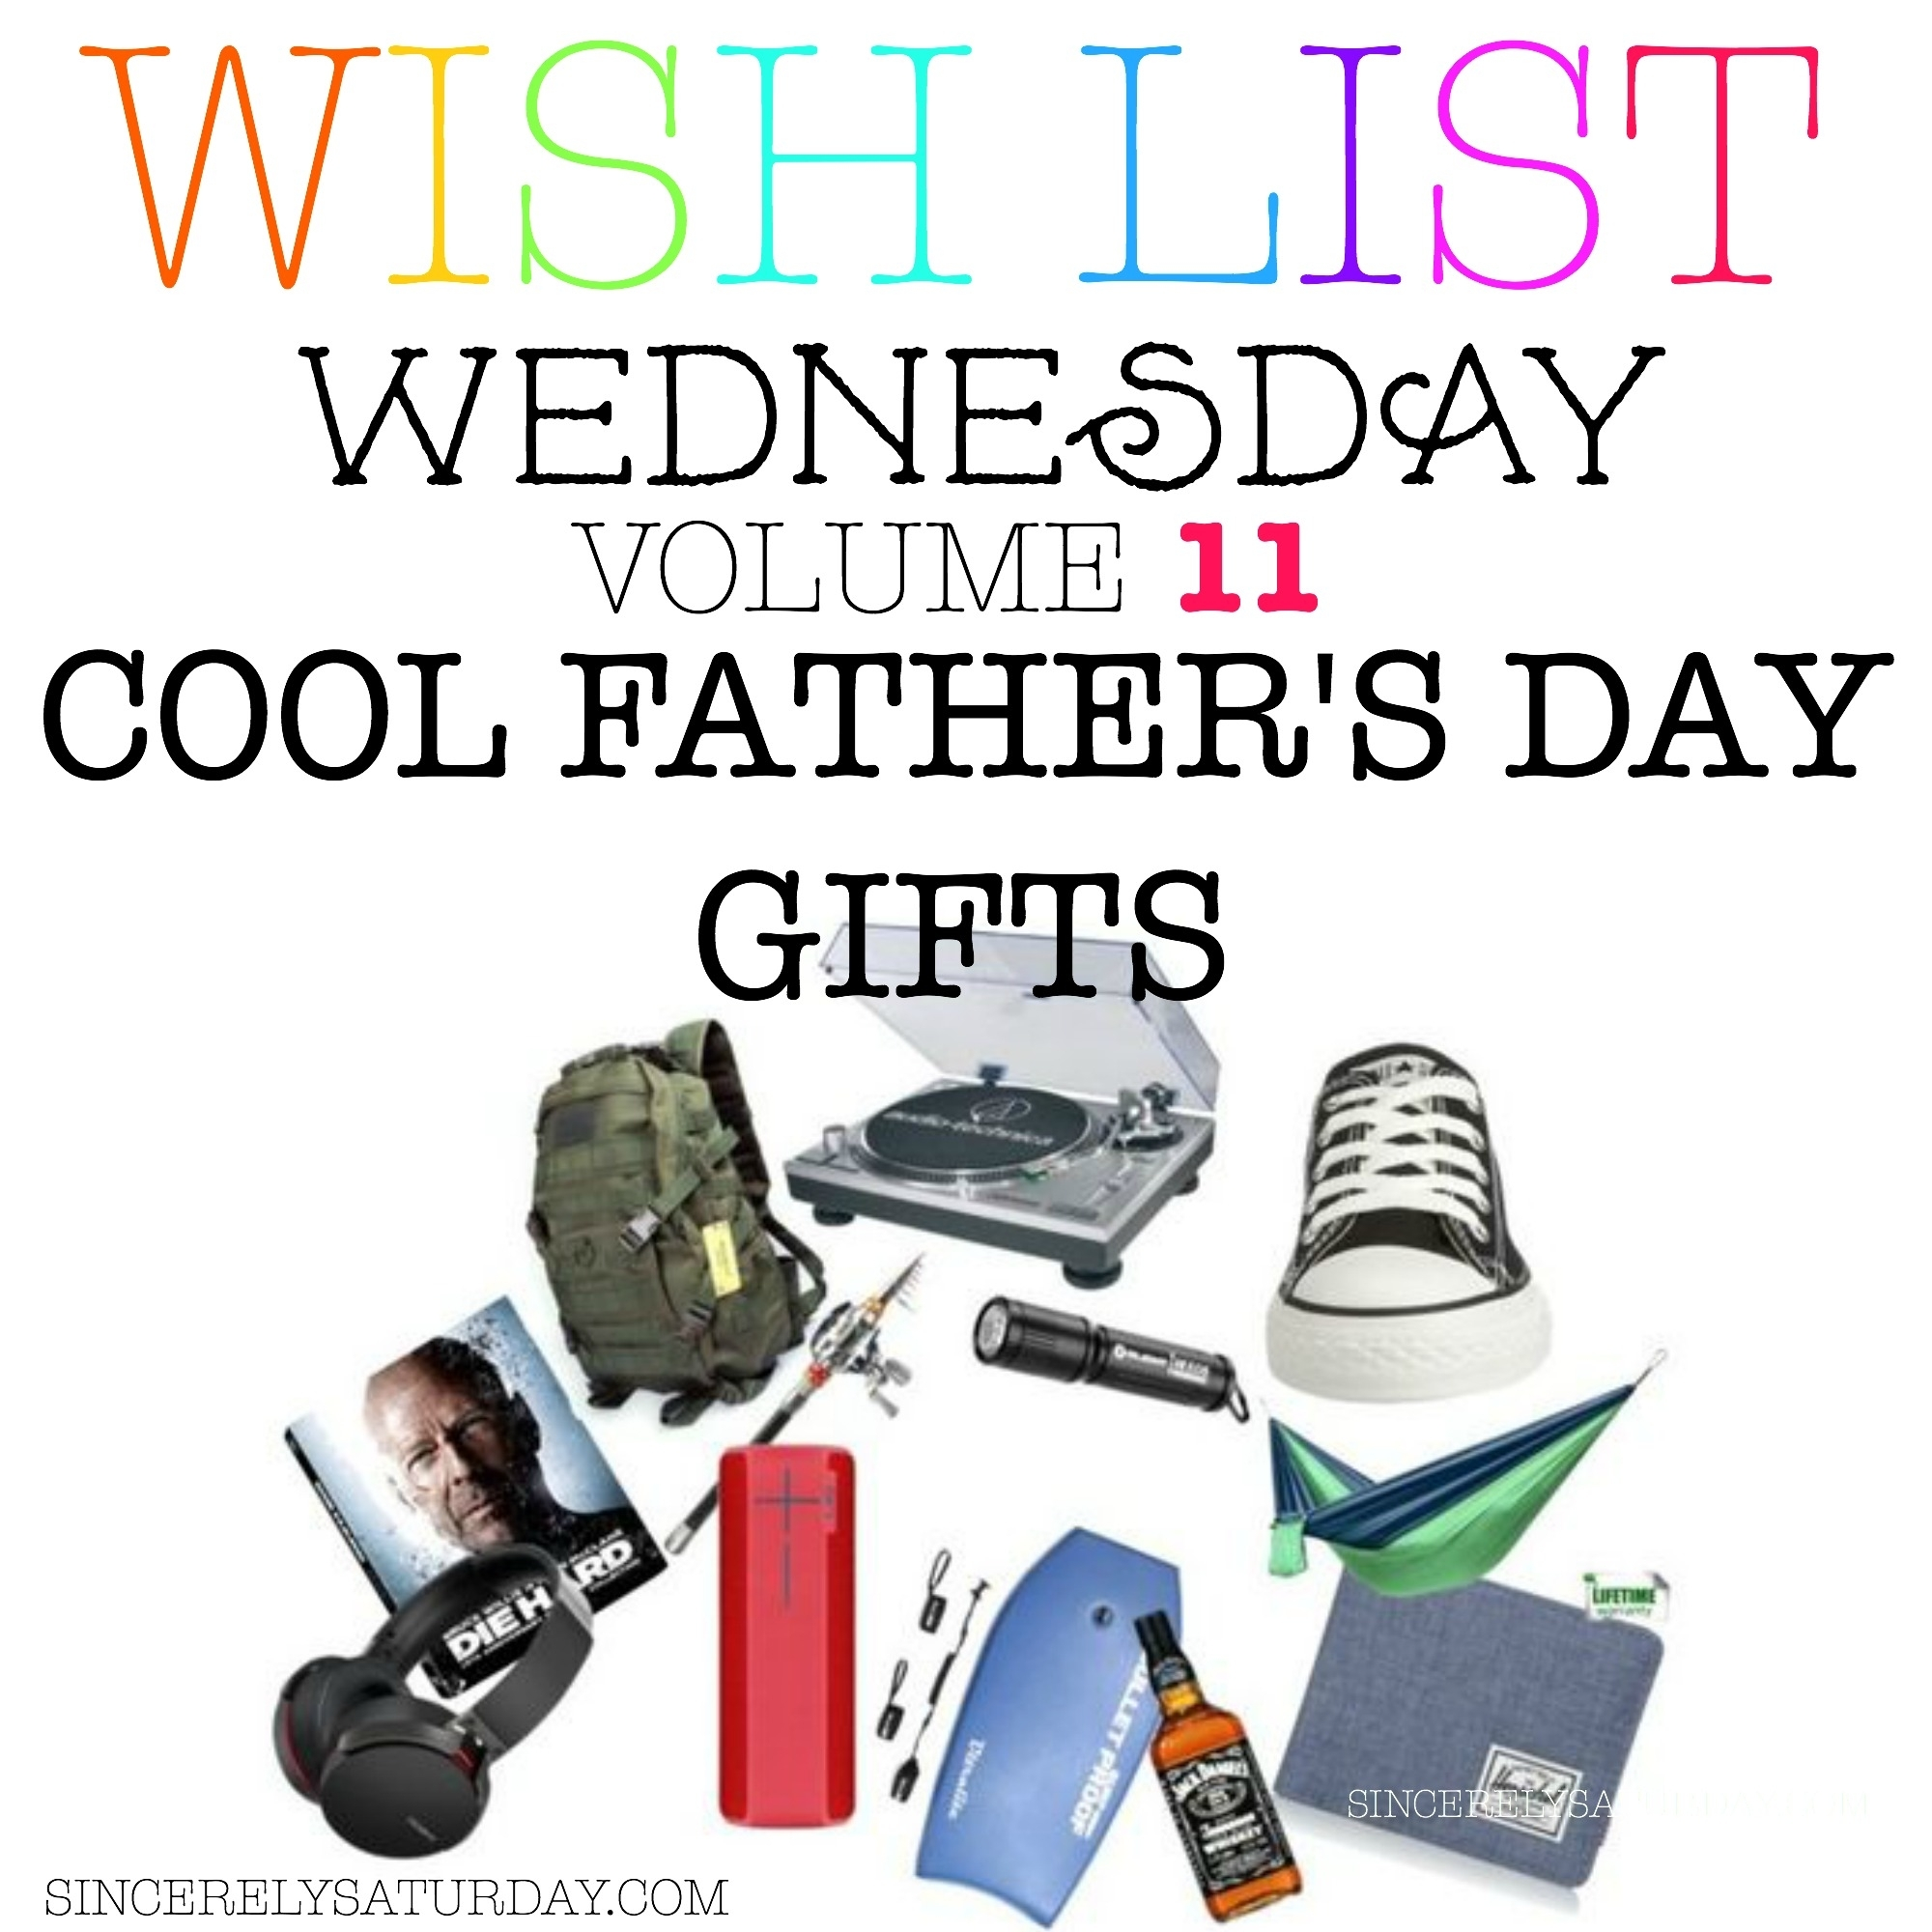 COOL FATHER'S DAY GIFTS - WISH LIST WEDNESDAY #11